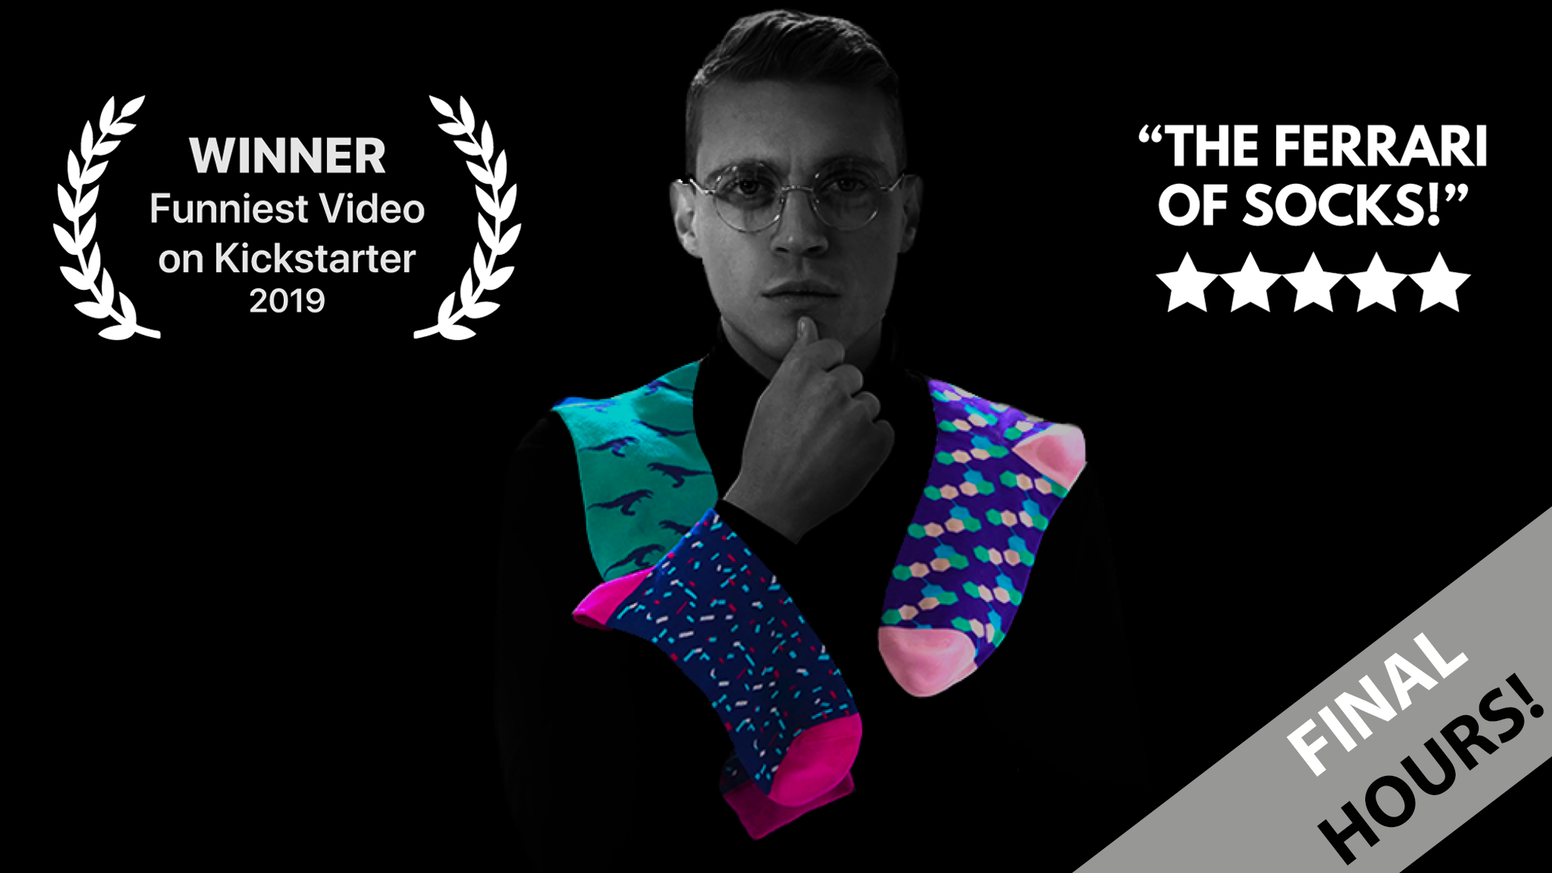 Luxuriously bold, comfortable & eco-friendly socks, revamped with 8 game changing features to bring you the best damn socks period.